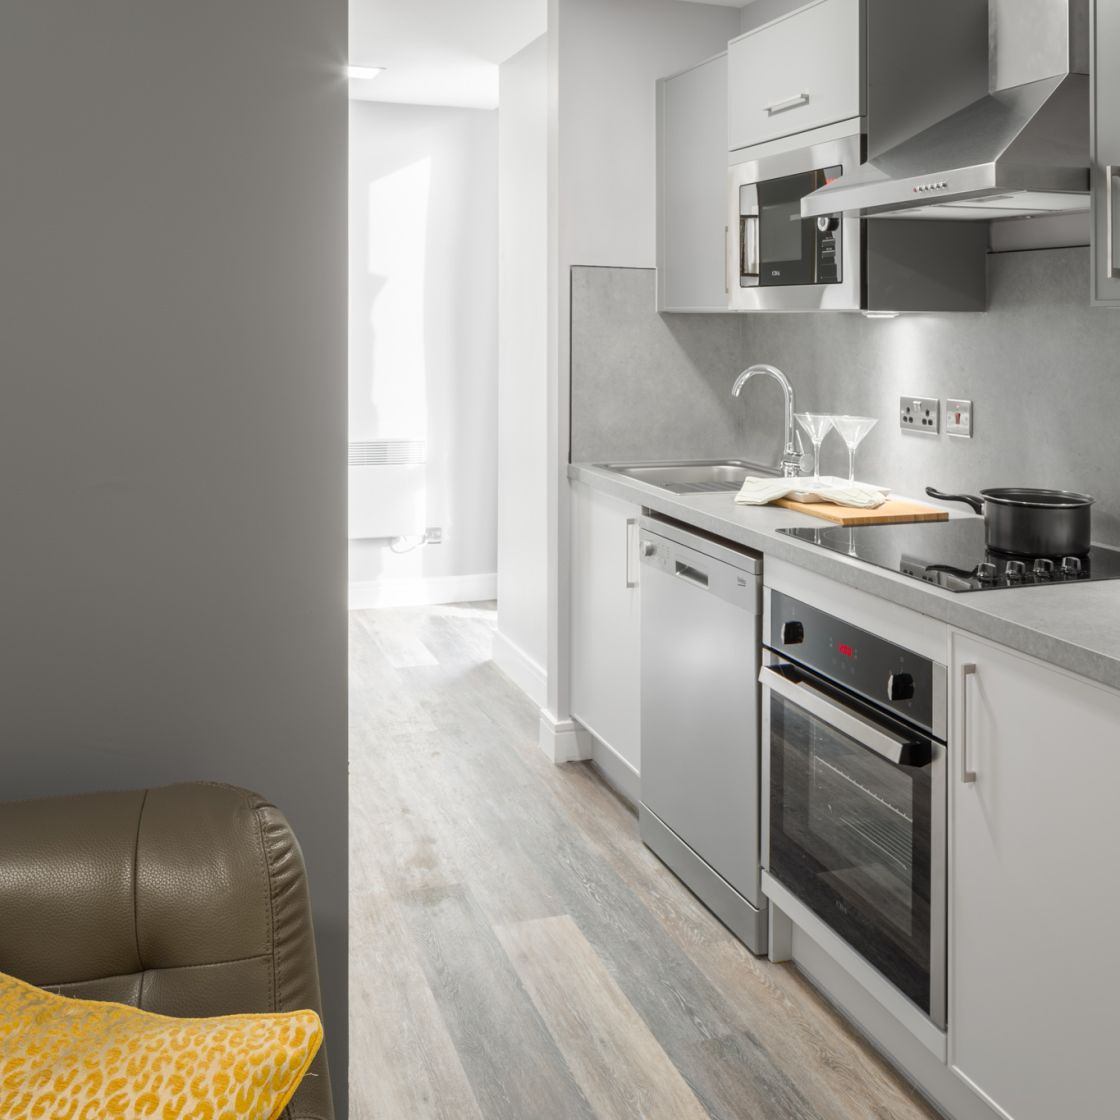 Grande Student Apartment in Liverpool. Fully fitted kitchen. IconInc, The Ascent